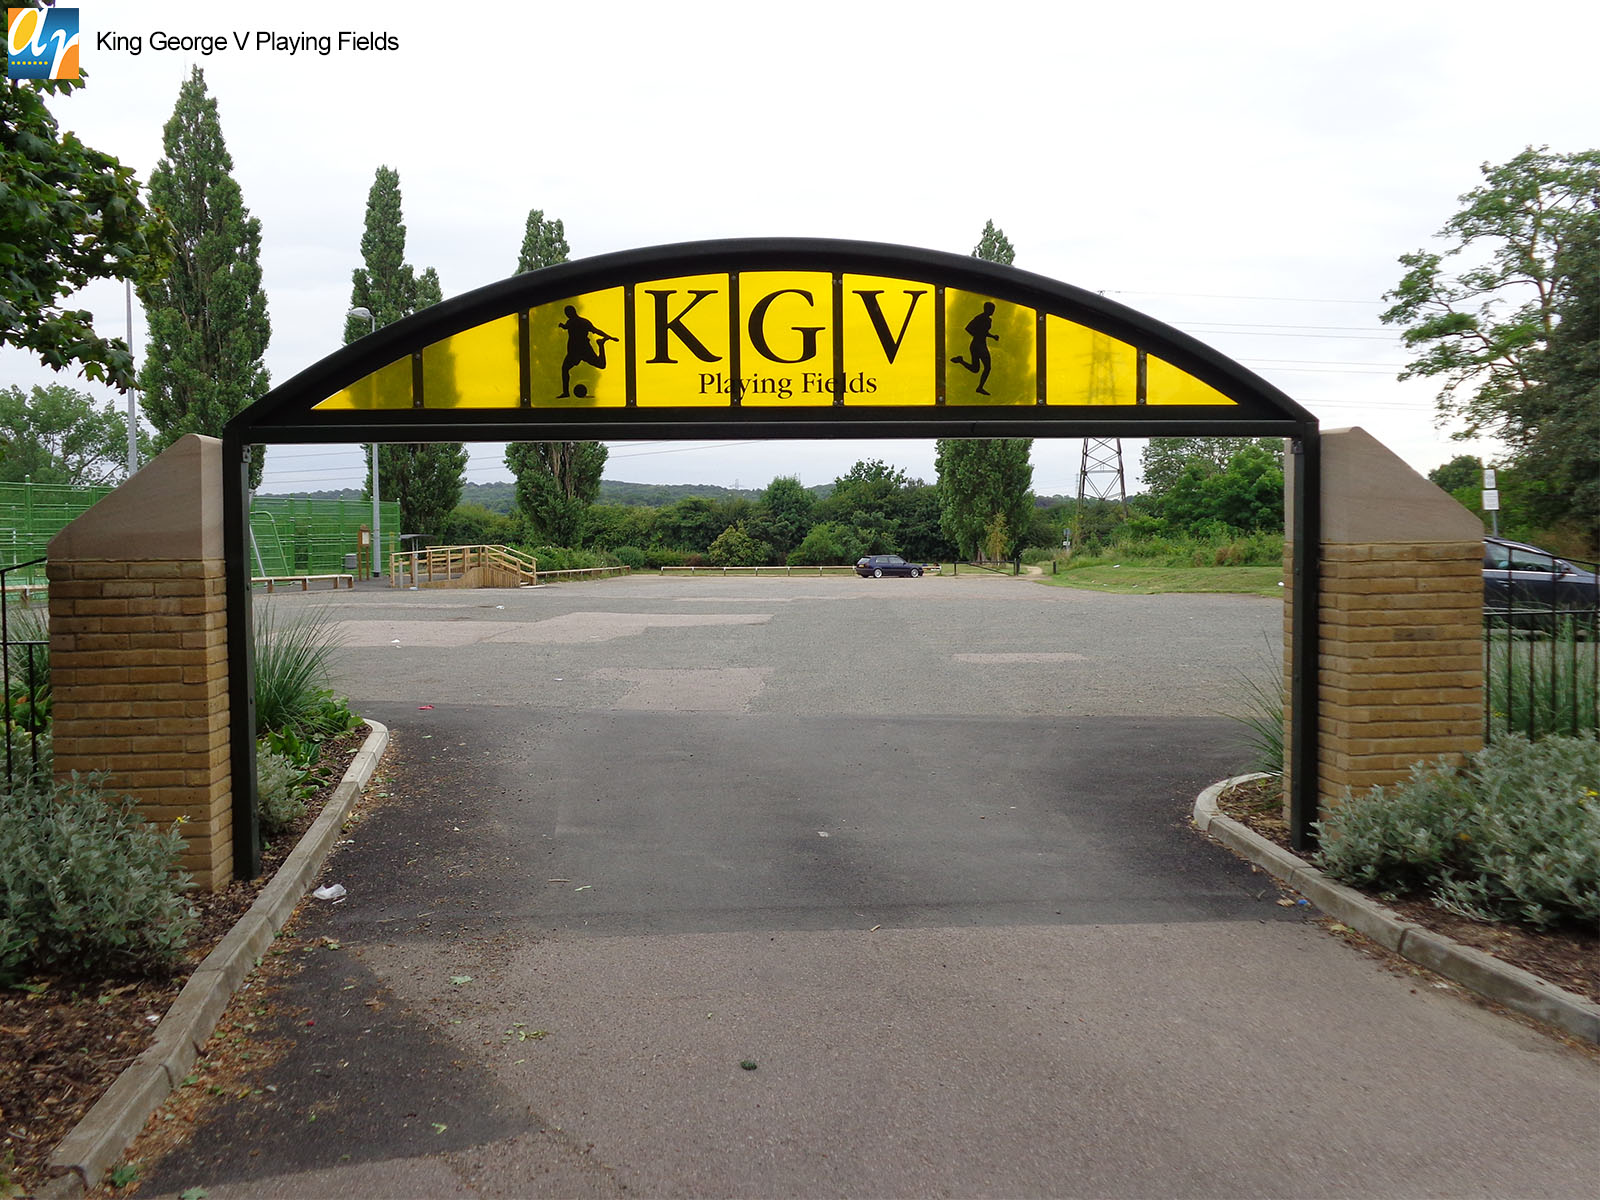 King George V Playing fields metal archway